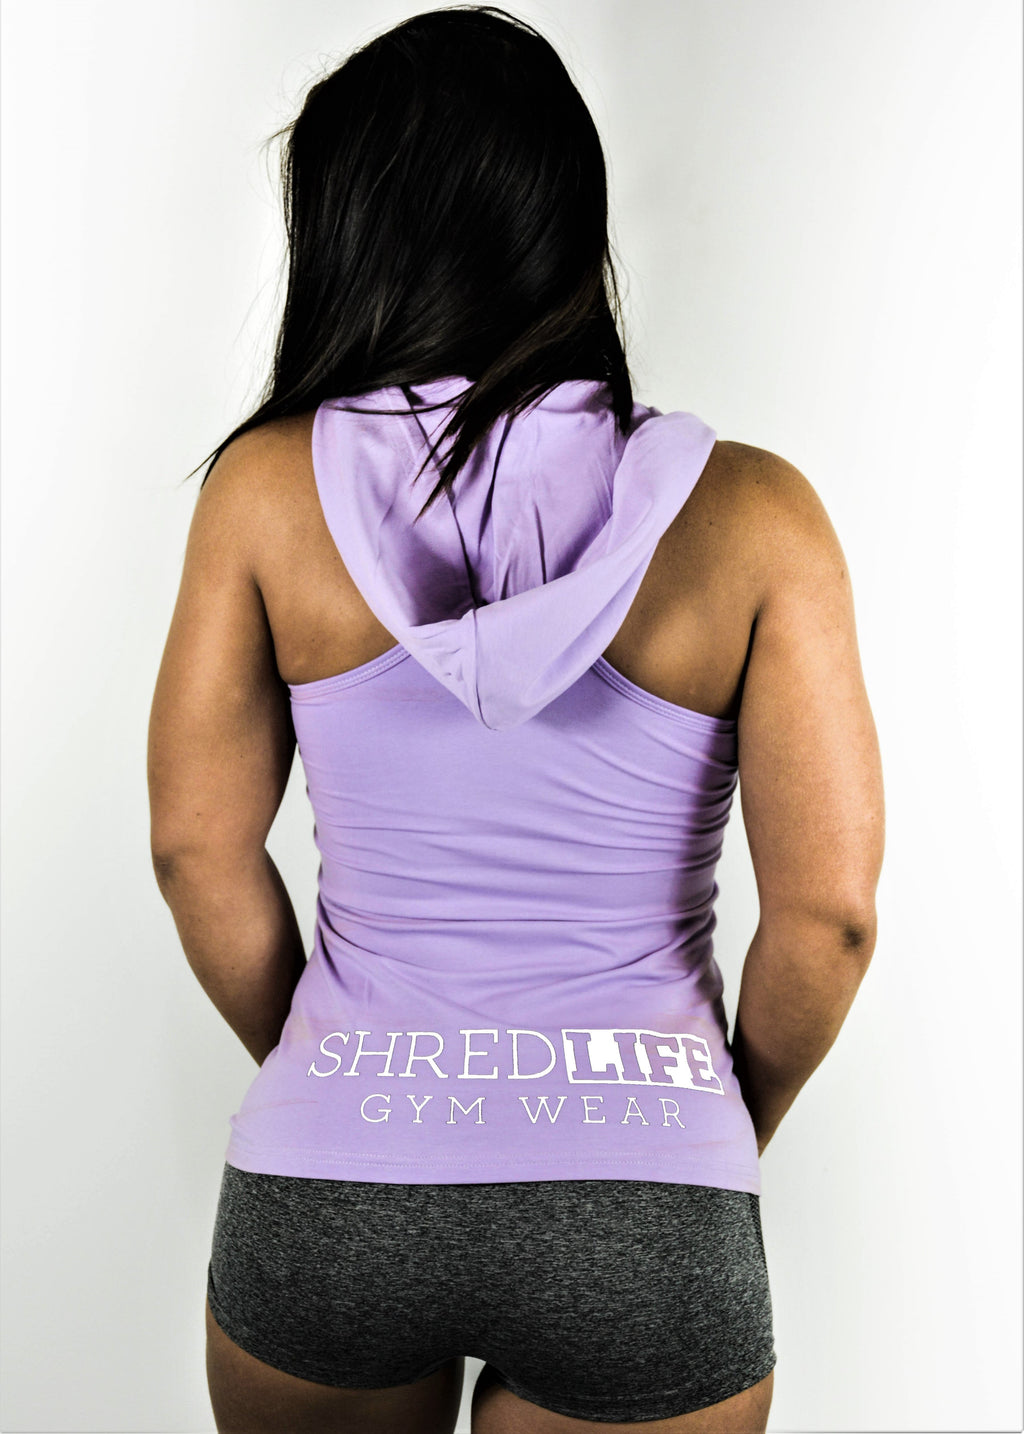 RACER SINGLET - WHITE ON PURPLE